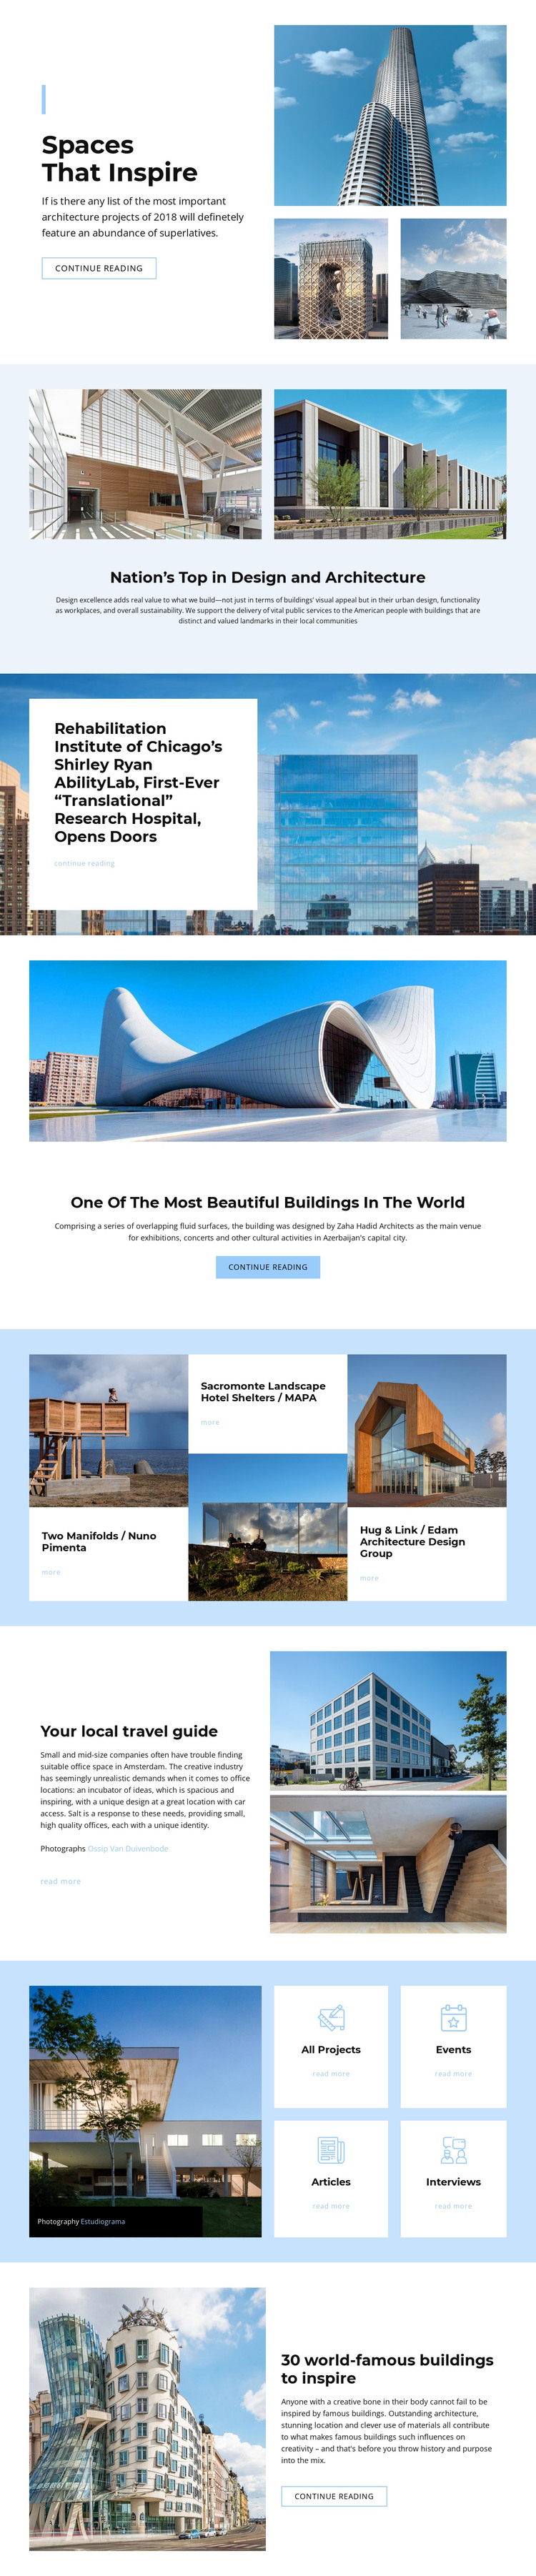 Space-inspired architechture HTML Template